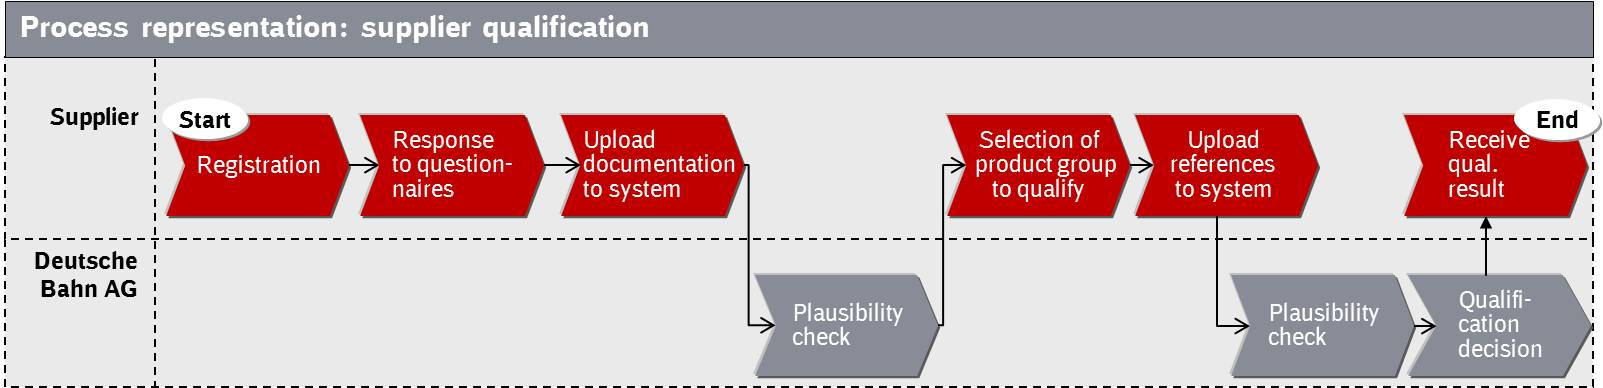 Qualilfication process